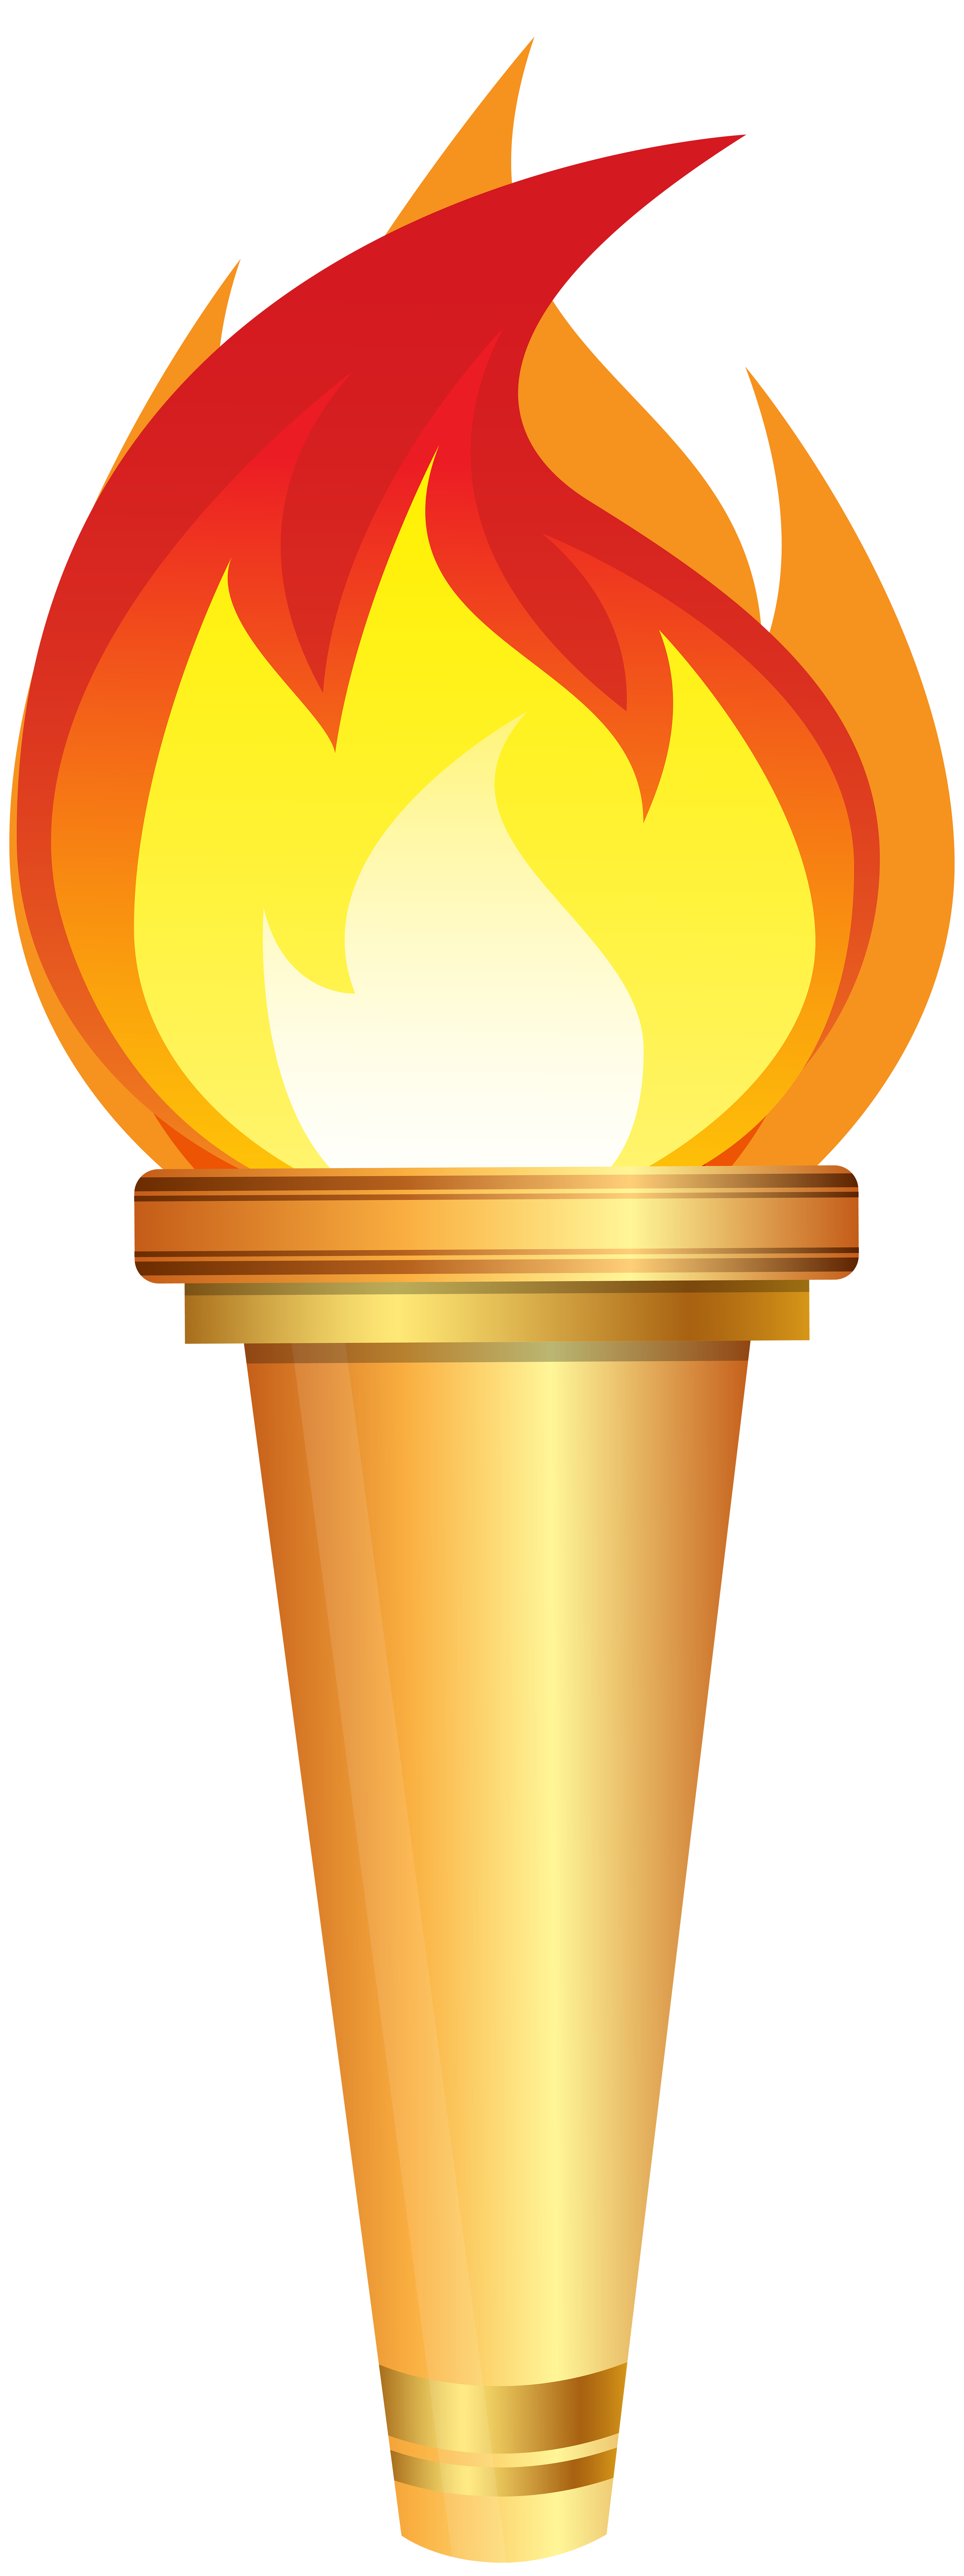 Torch png clip art. Olympics clipart olympic cauldron